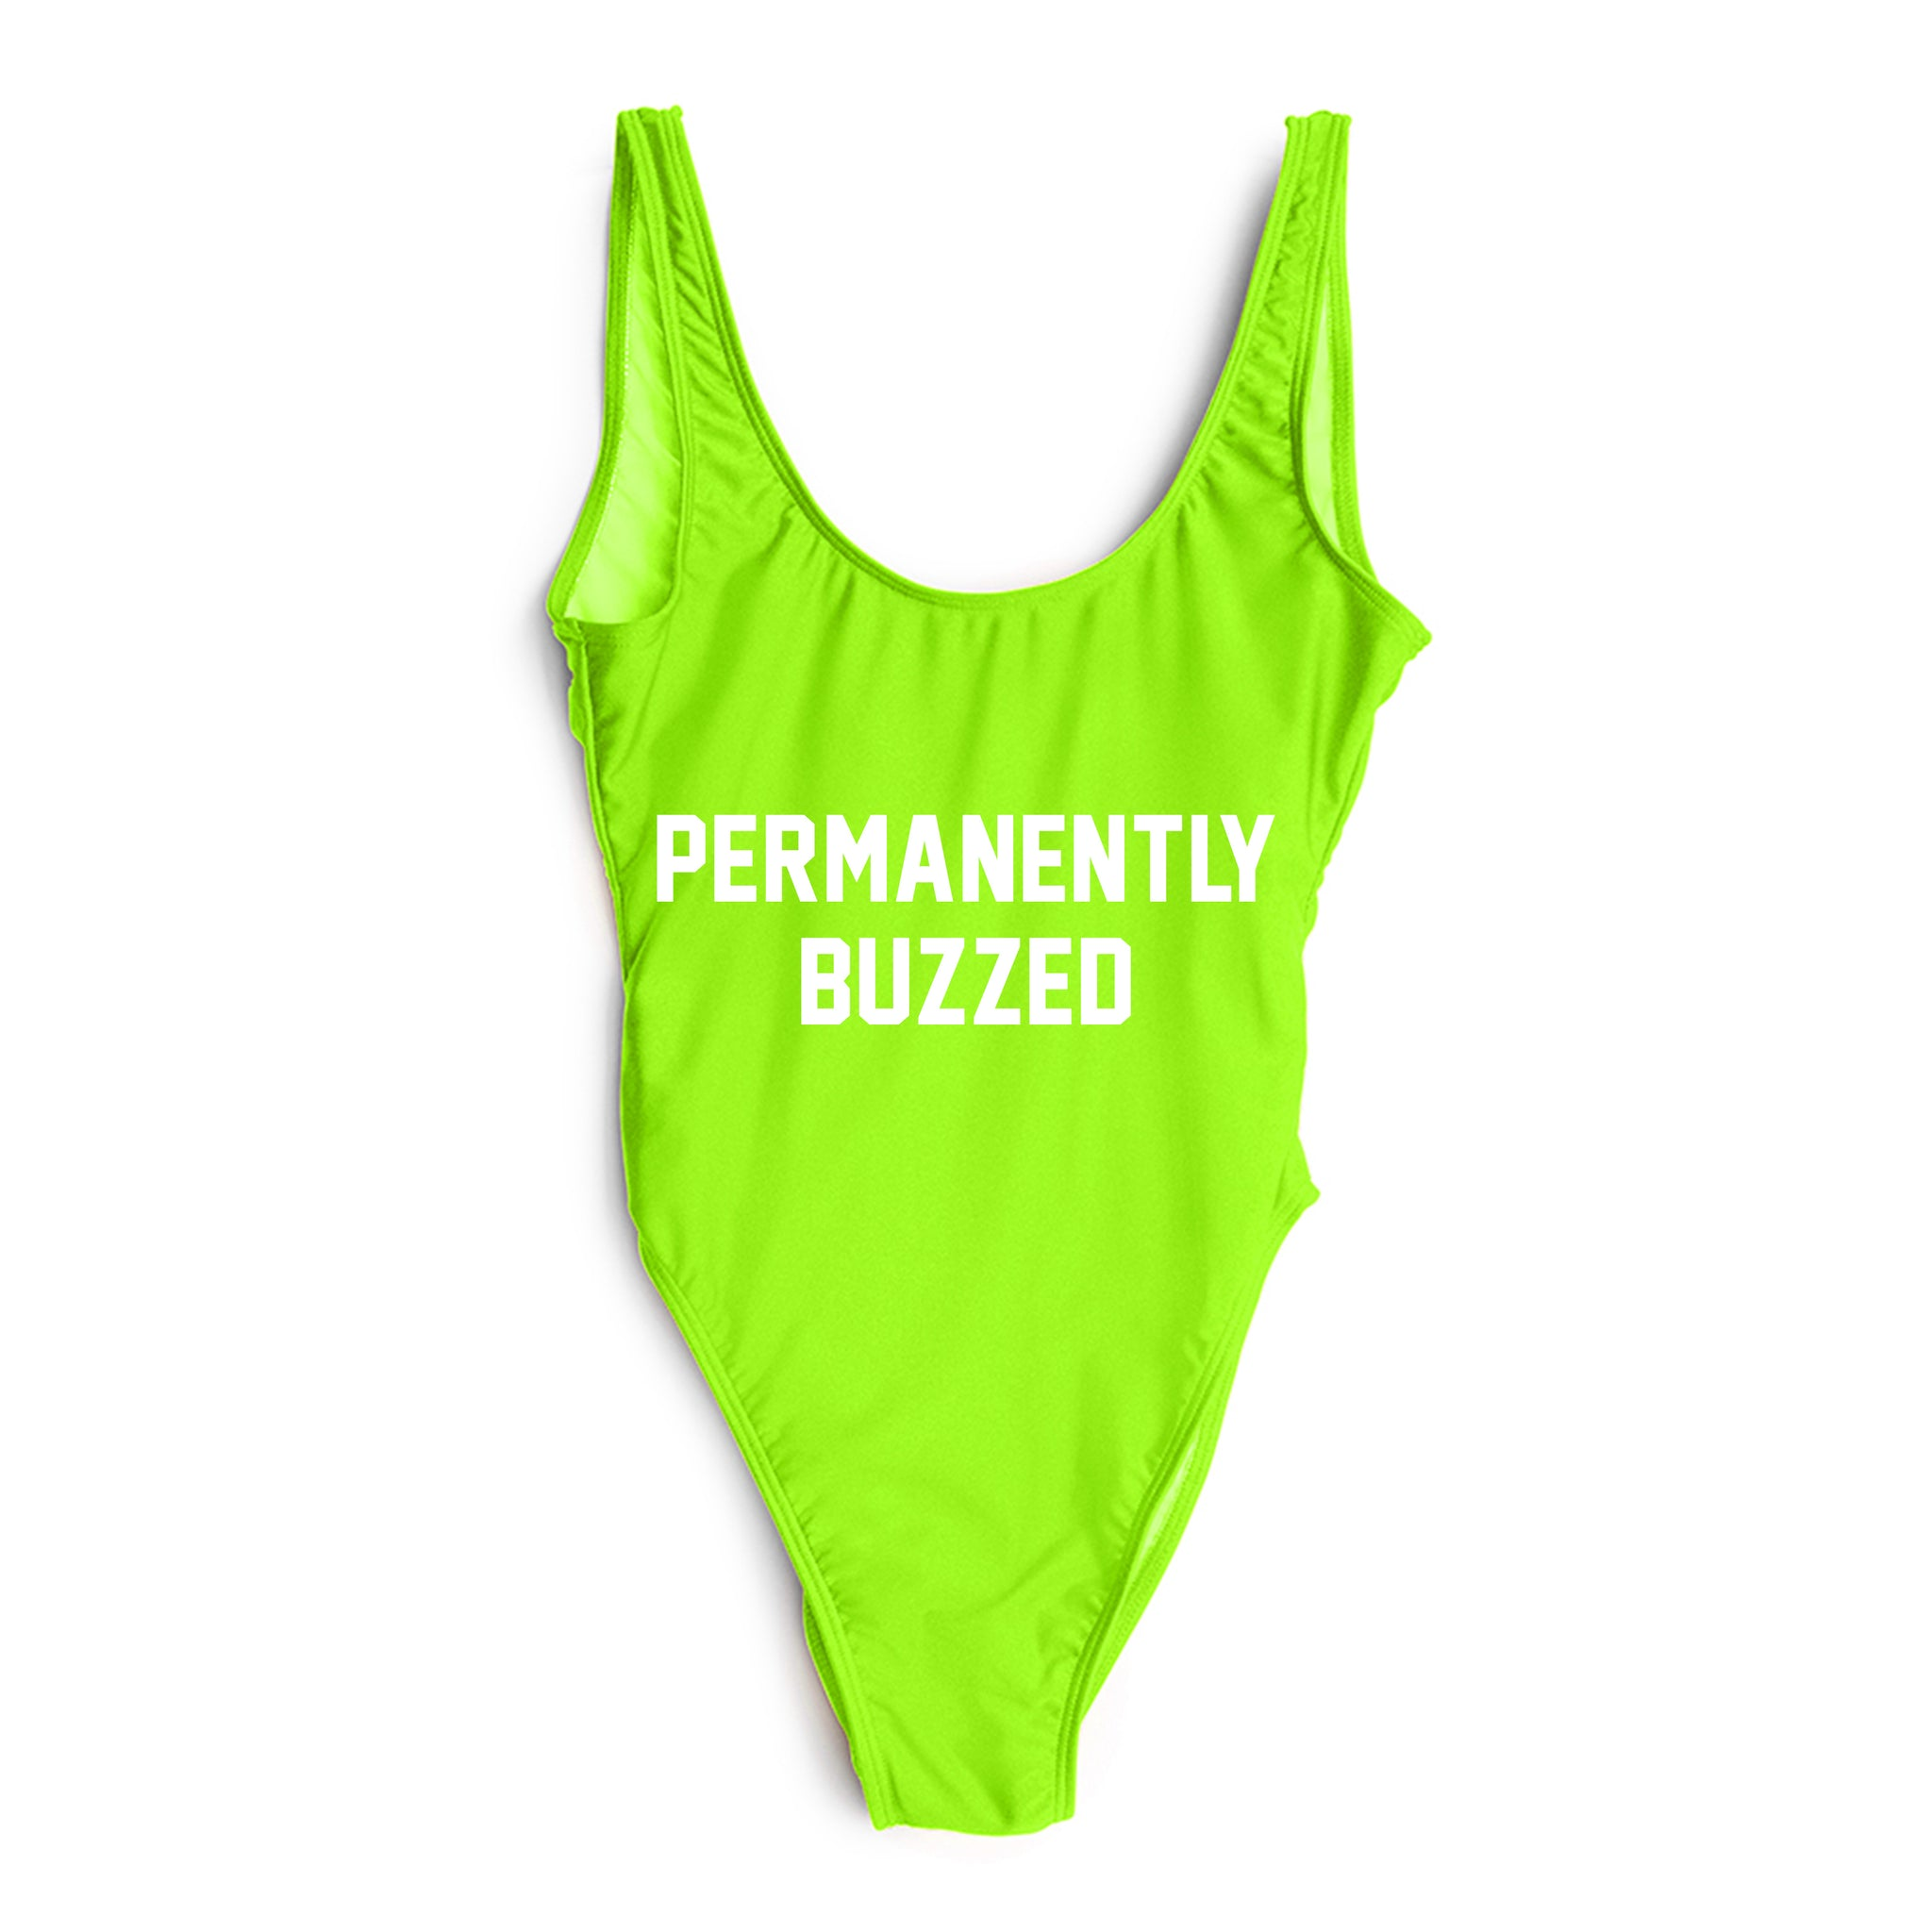 PERMANENTLY BUZZED [SWIMSUIT]